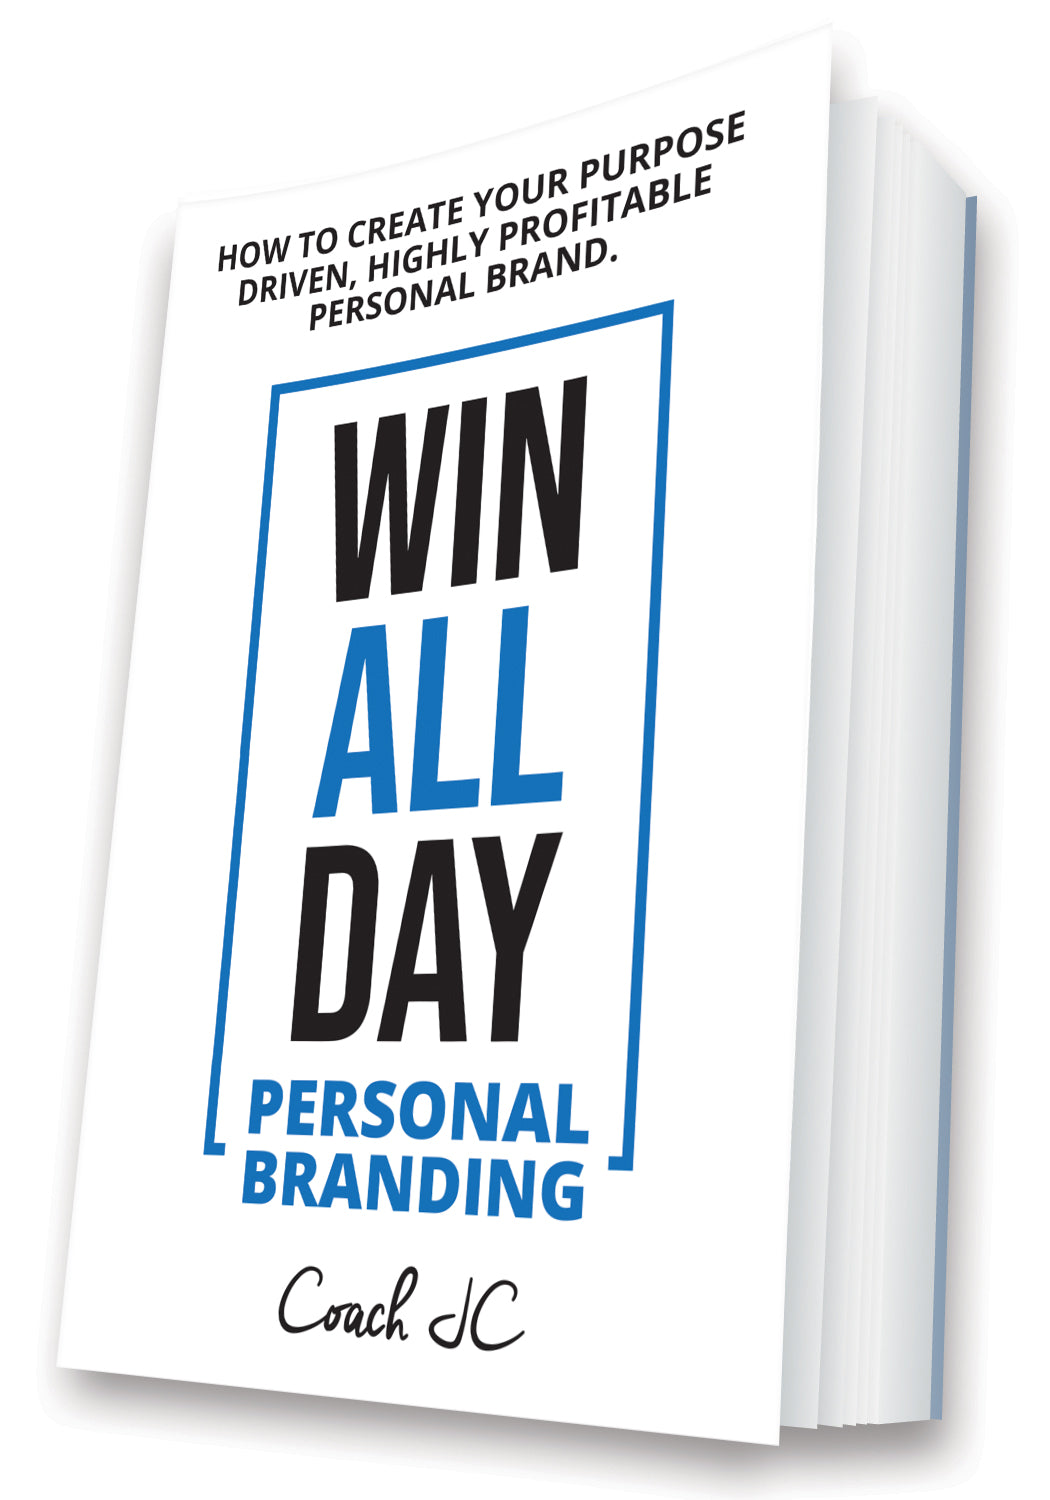 WIN ALL DAY PERSONAL BRANDING - HOW TO CREATE YOUR PURPOSE DRIVEN, HIGHLY PROFITABLE PERSONAL BRAND